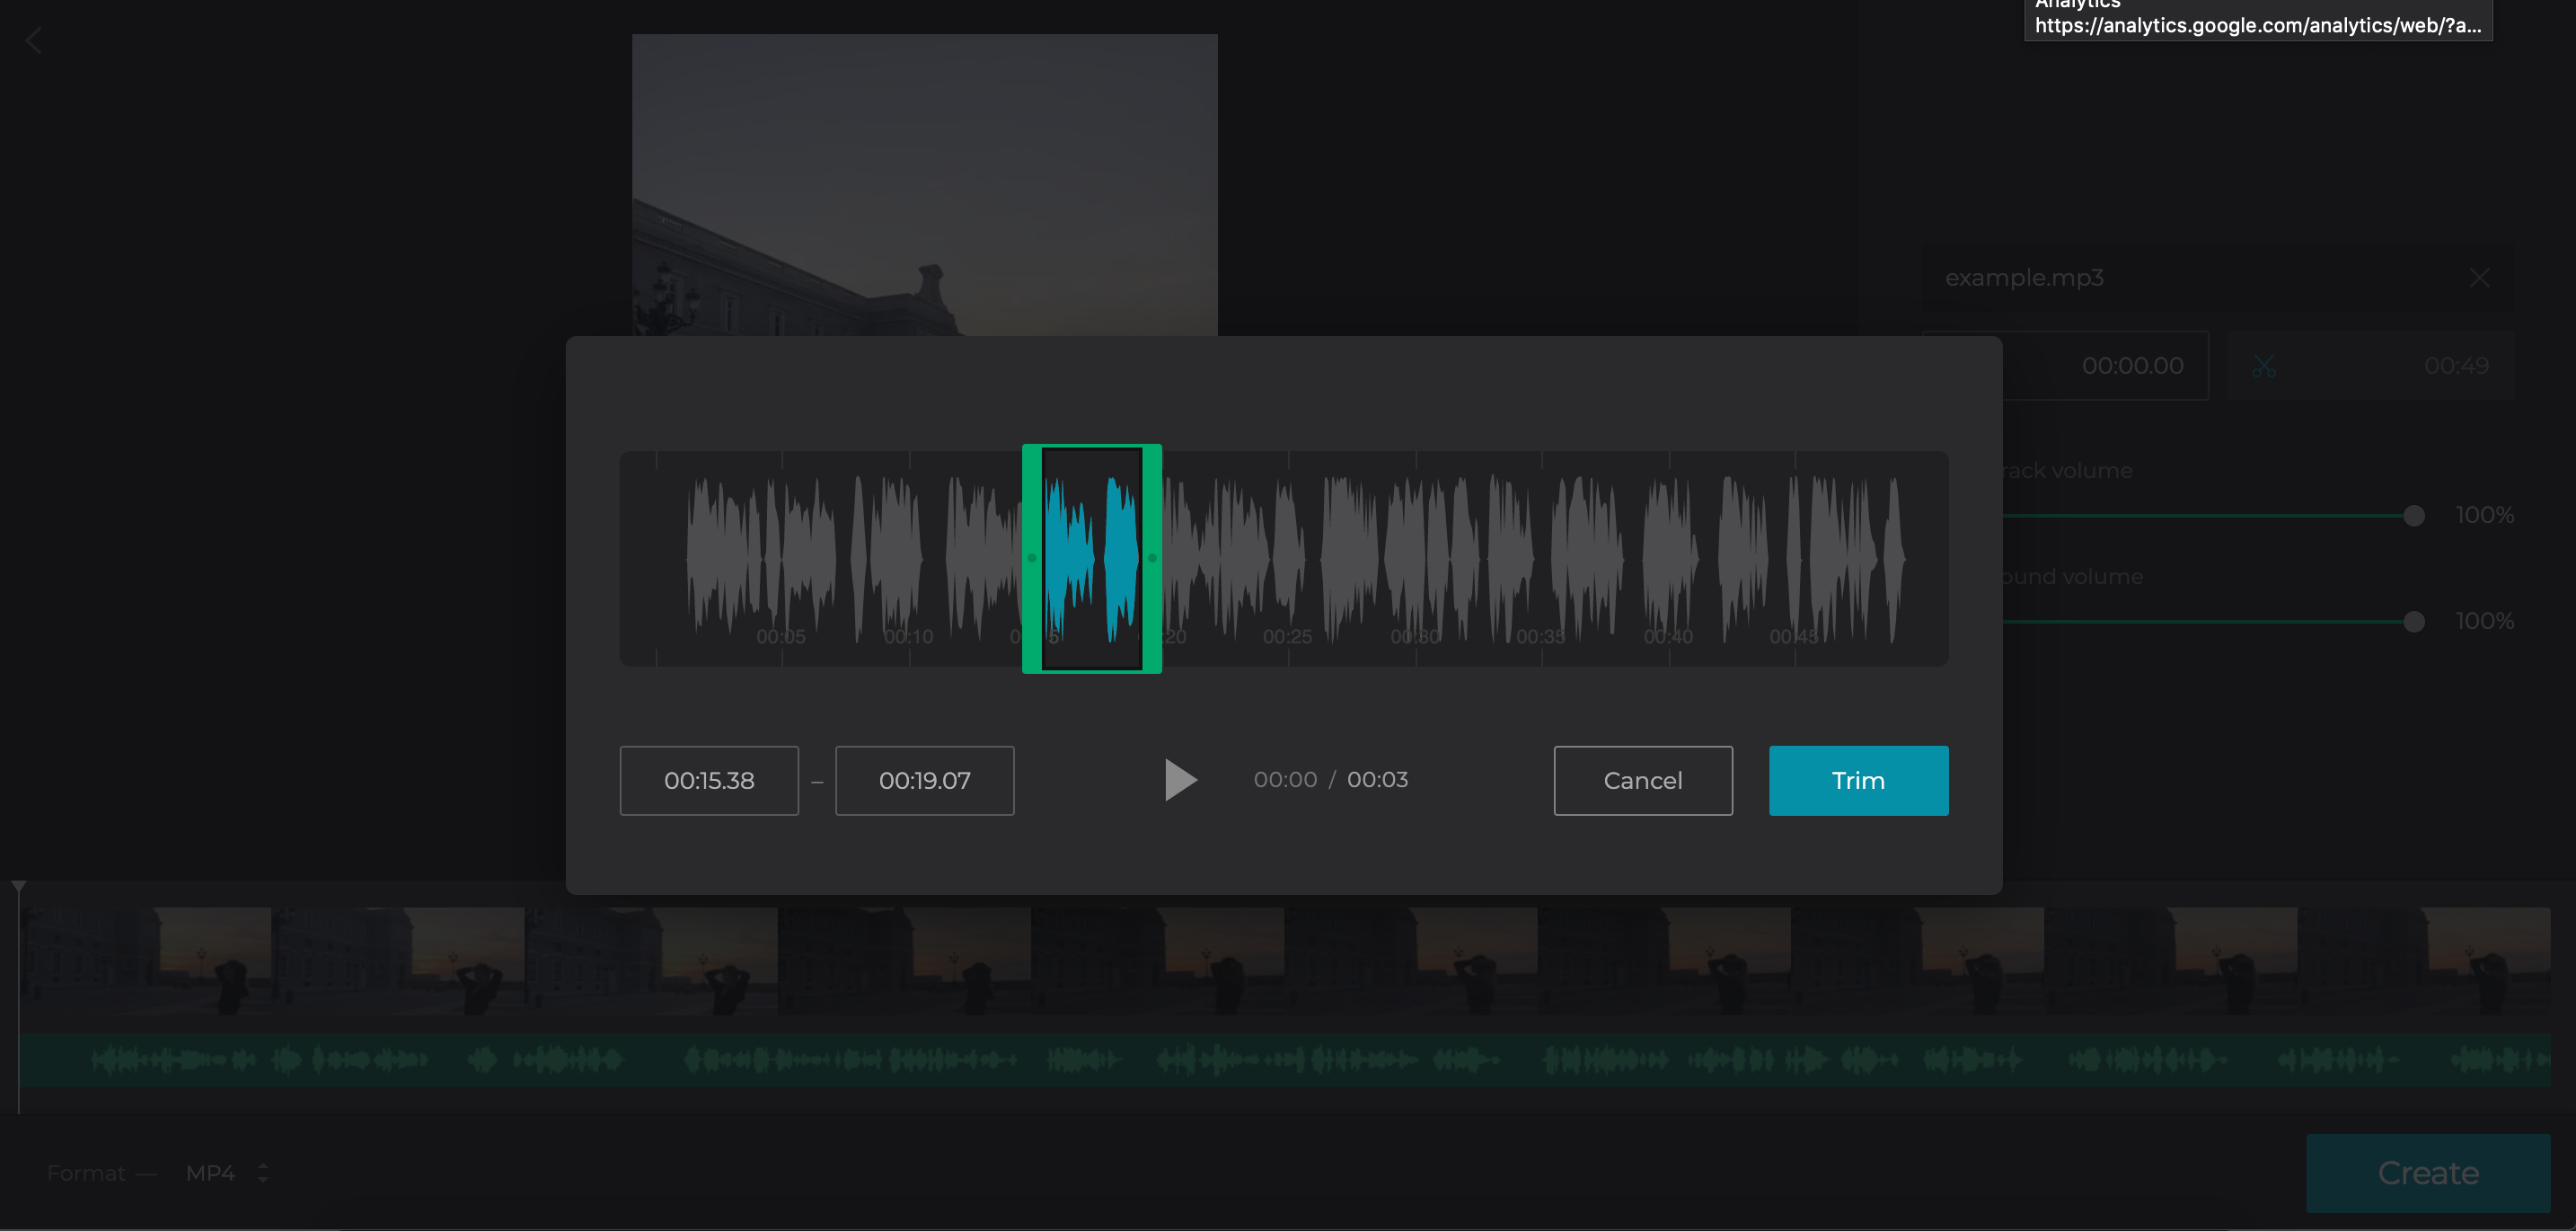 Cut audio to the Triller video length